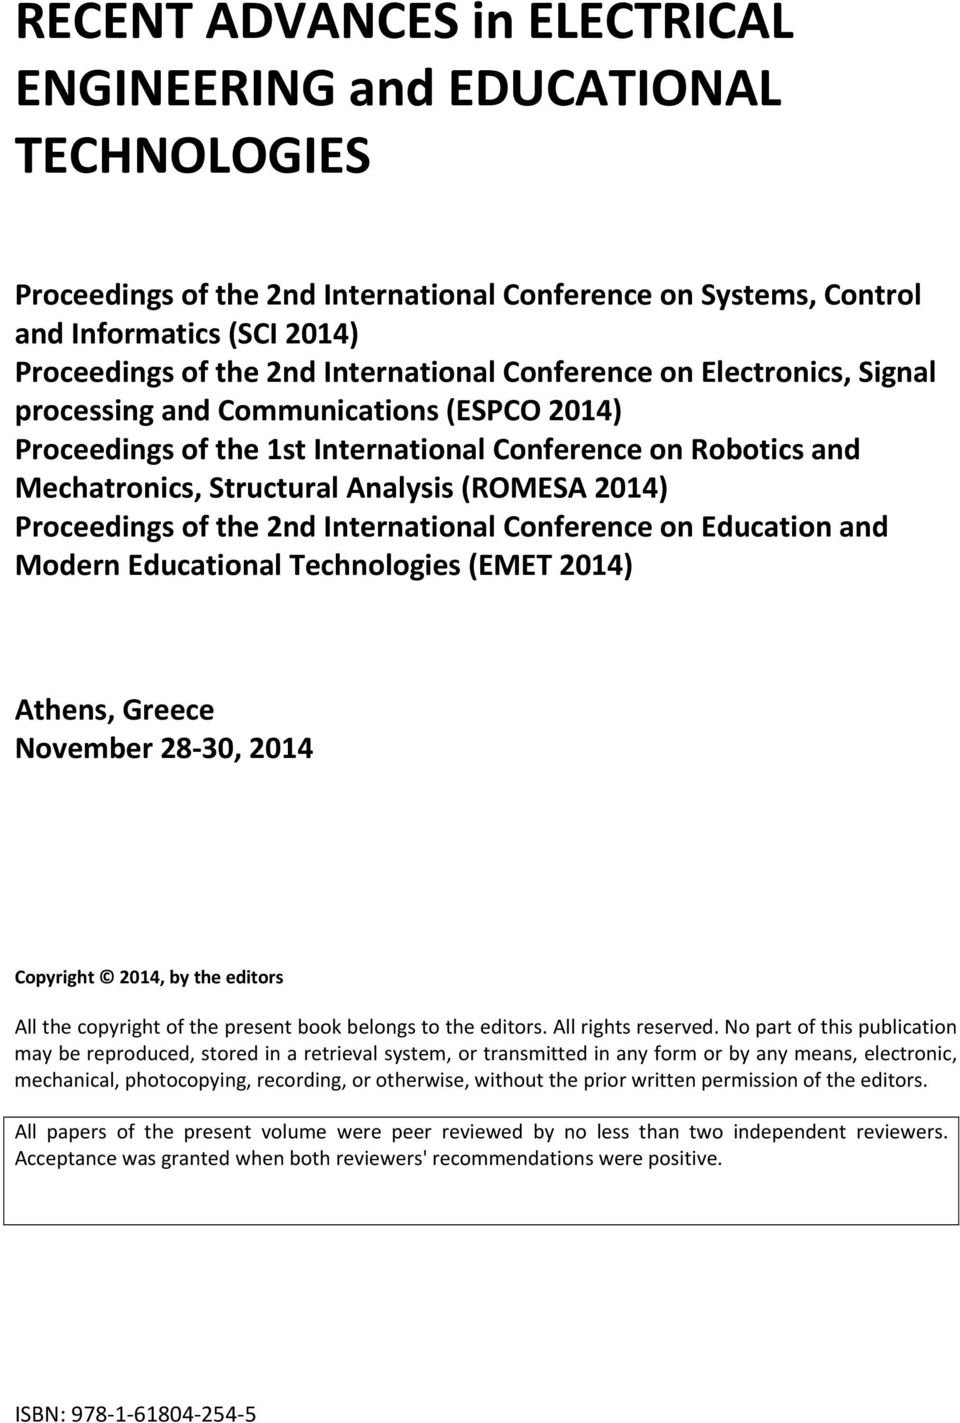 Recent Advances In Electrical Engineering And Educational Filespi Timing Diagramsvg Wikipedia The Free Encyclopedia 2014 Proceedings Of 2nd International Conference On Education Modern Technologies Emet